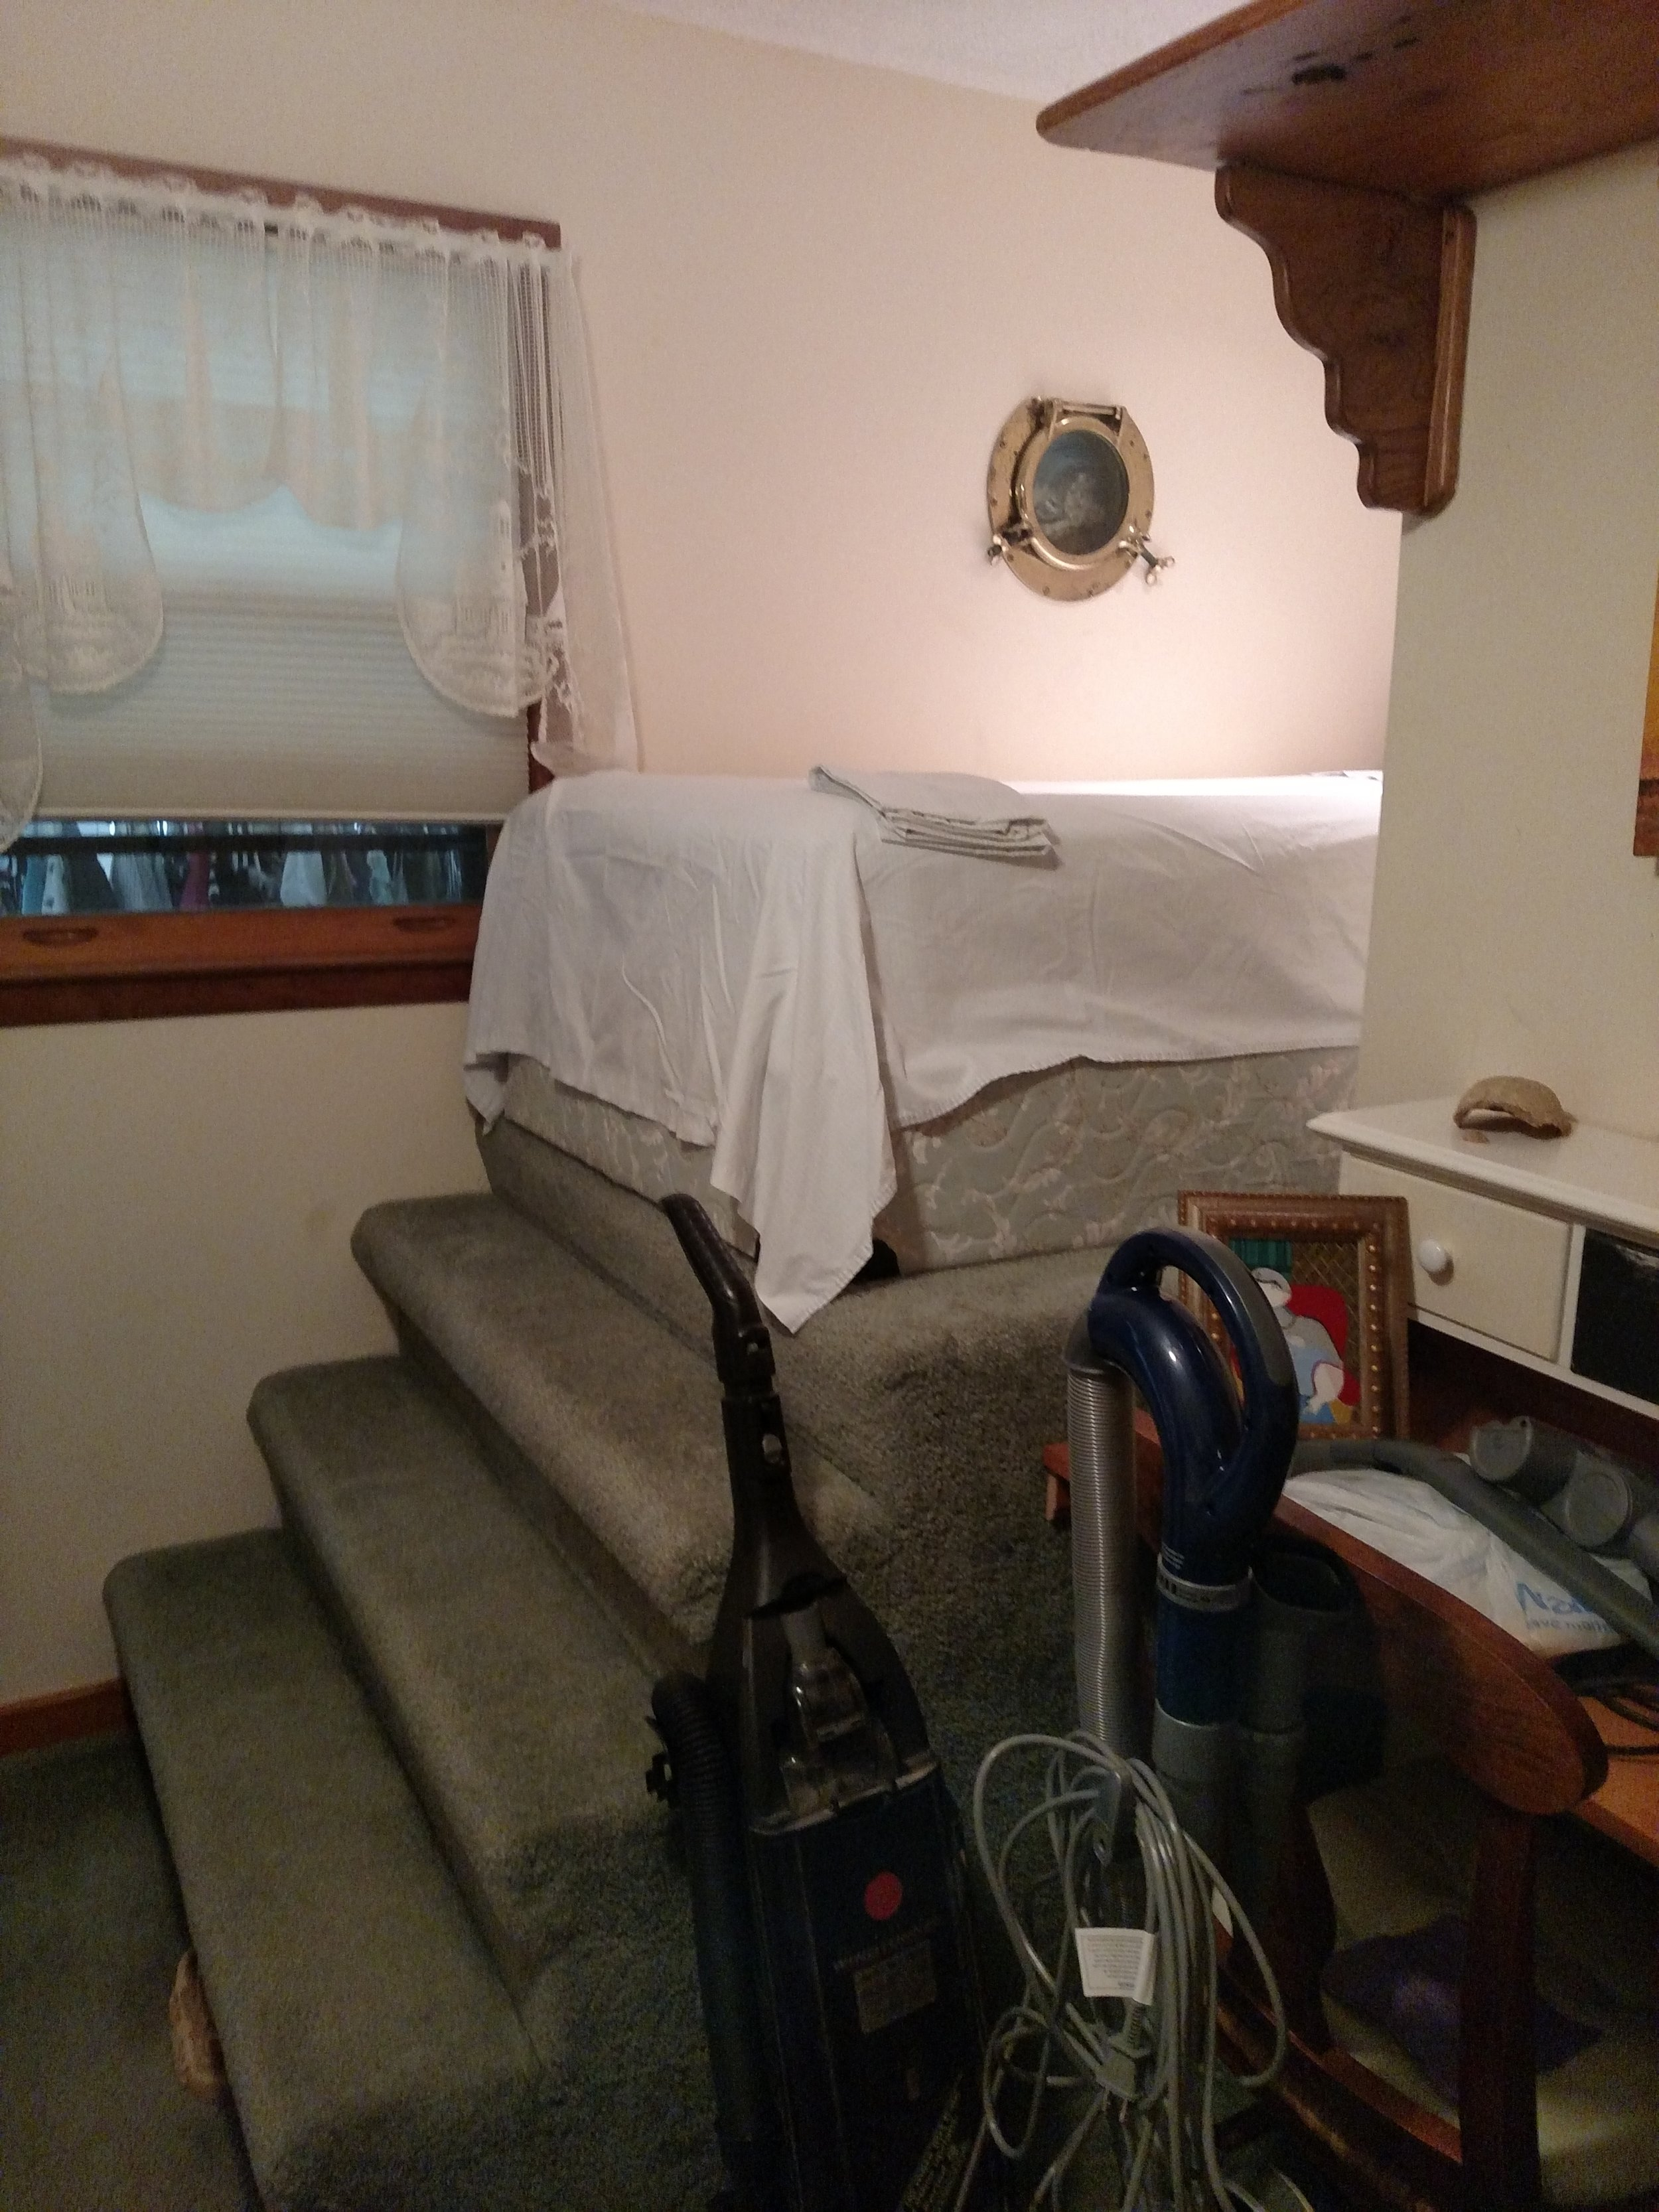 BEDROOM 4 RIDICULOUS TWIN BED, SHOULD OPEN TO BEDROOM 3 AND BE USED FOR A CLOSET OR THIS BED TAKEN OUT.jpg